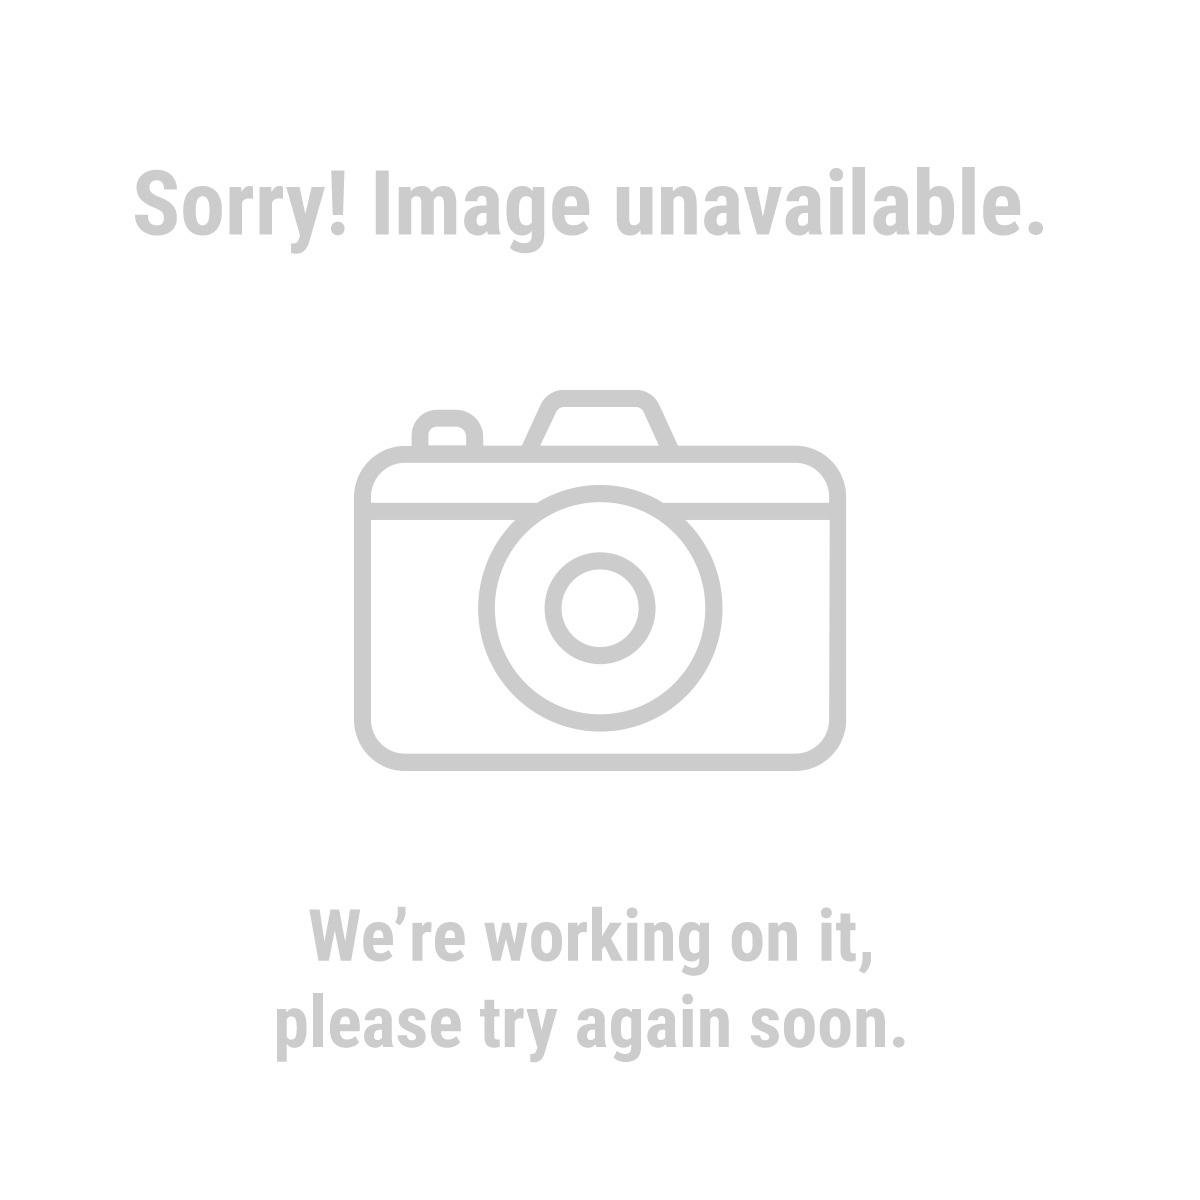 Central Pneumatic 69666 1.8 Horsepower, 17 Gallon, 150 PSI PSI Oilless Air Compressor